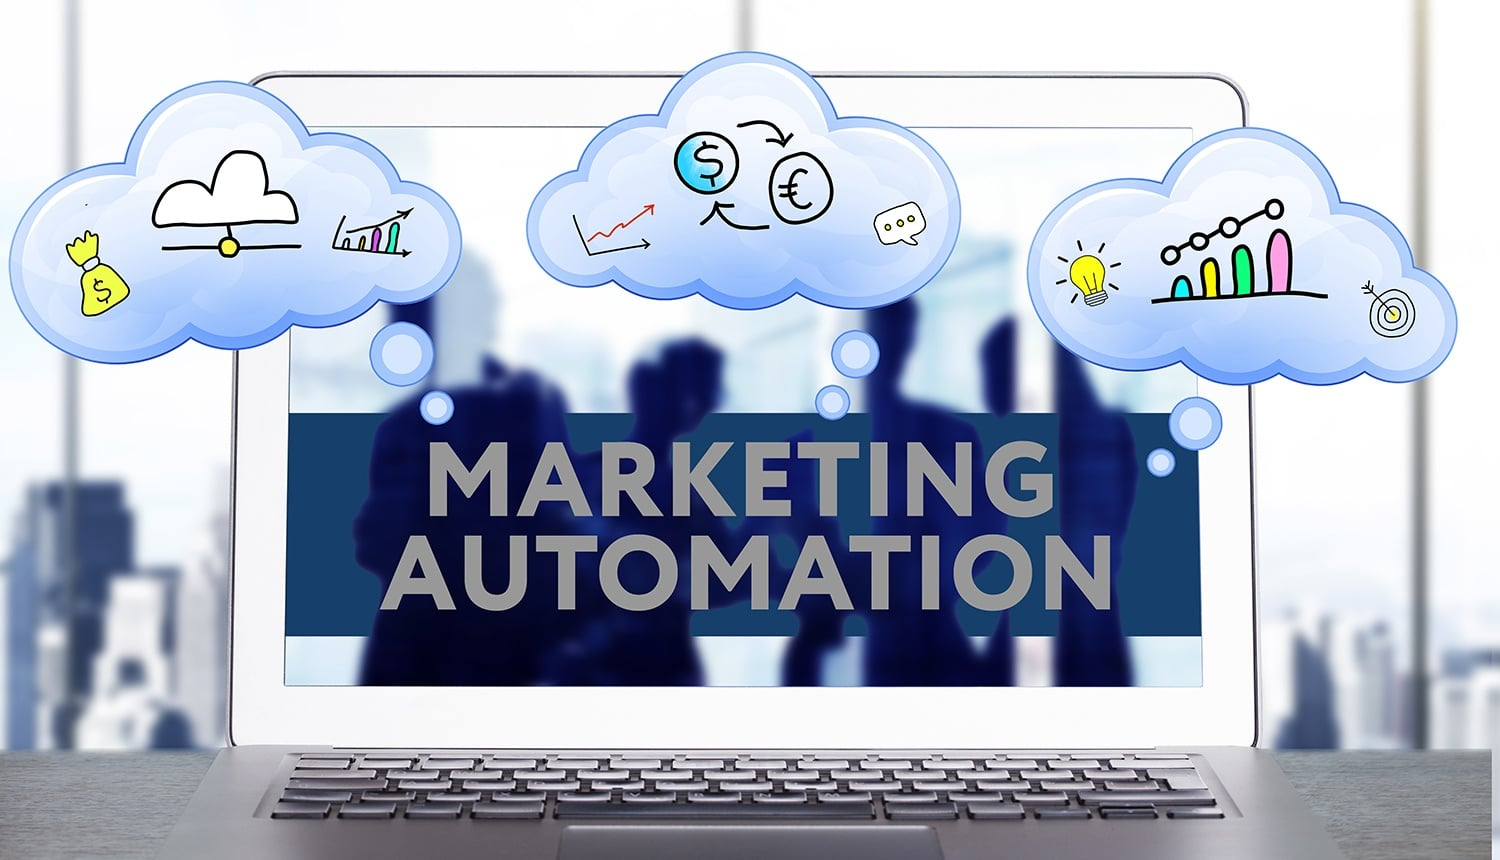 Top 12 Marketing Automation Softwares of 2019